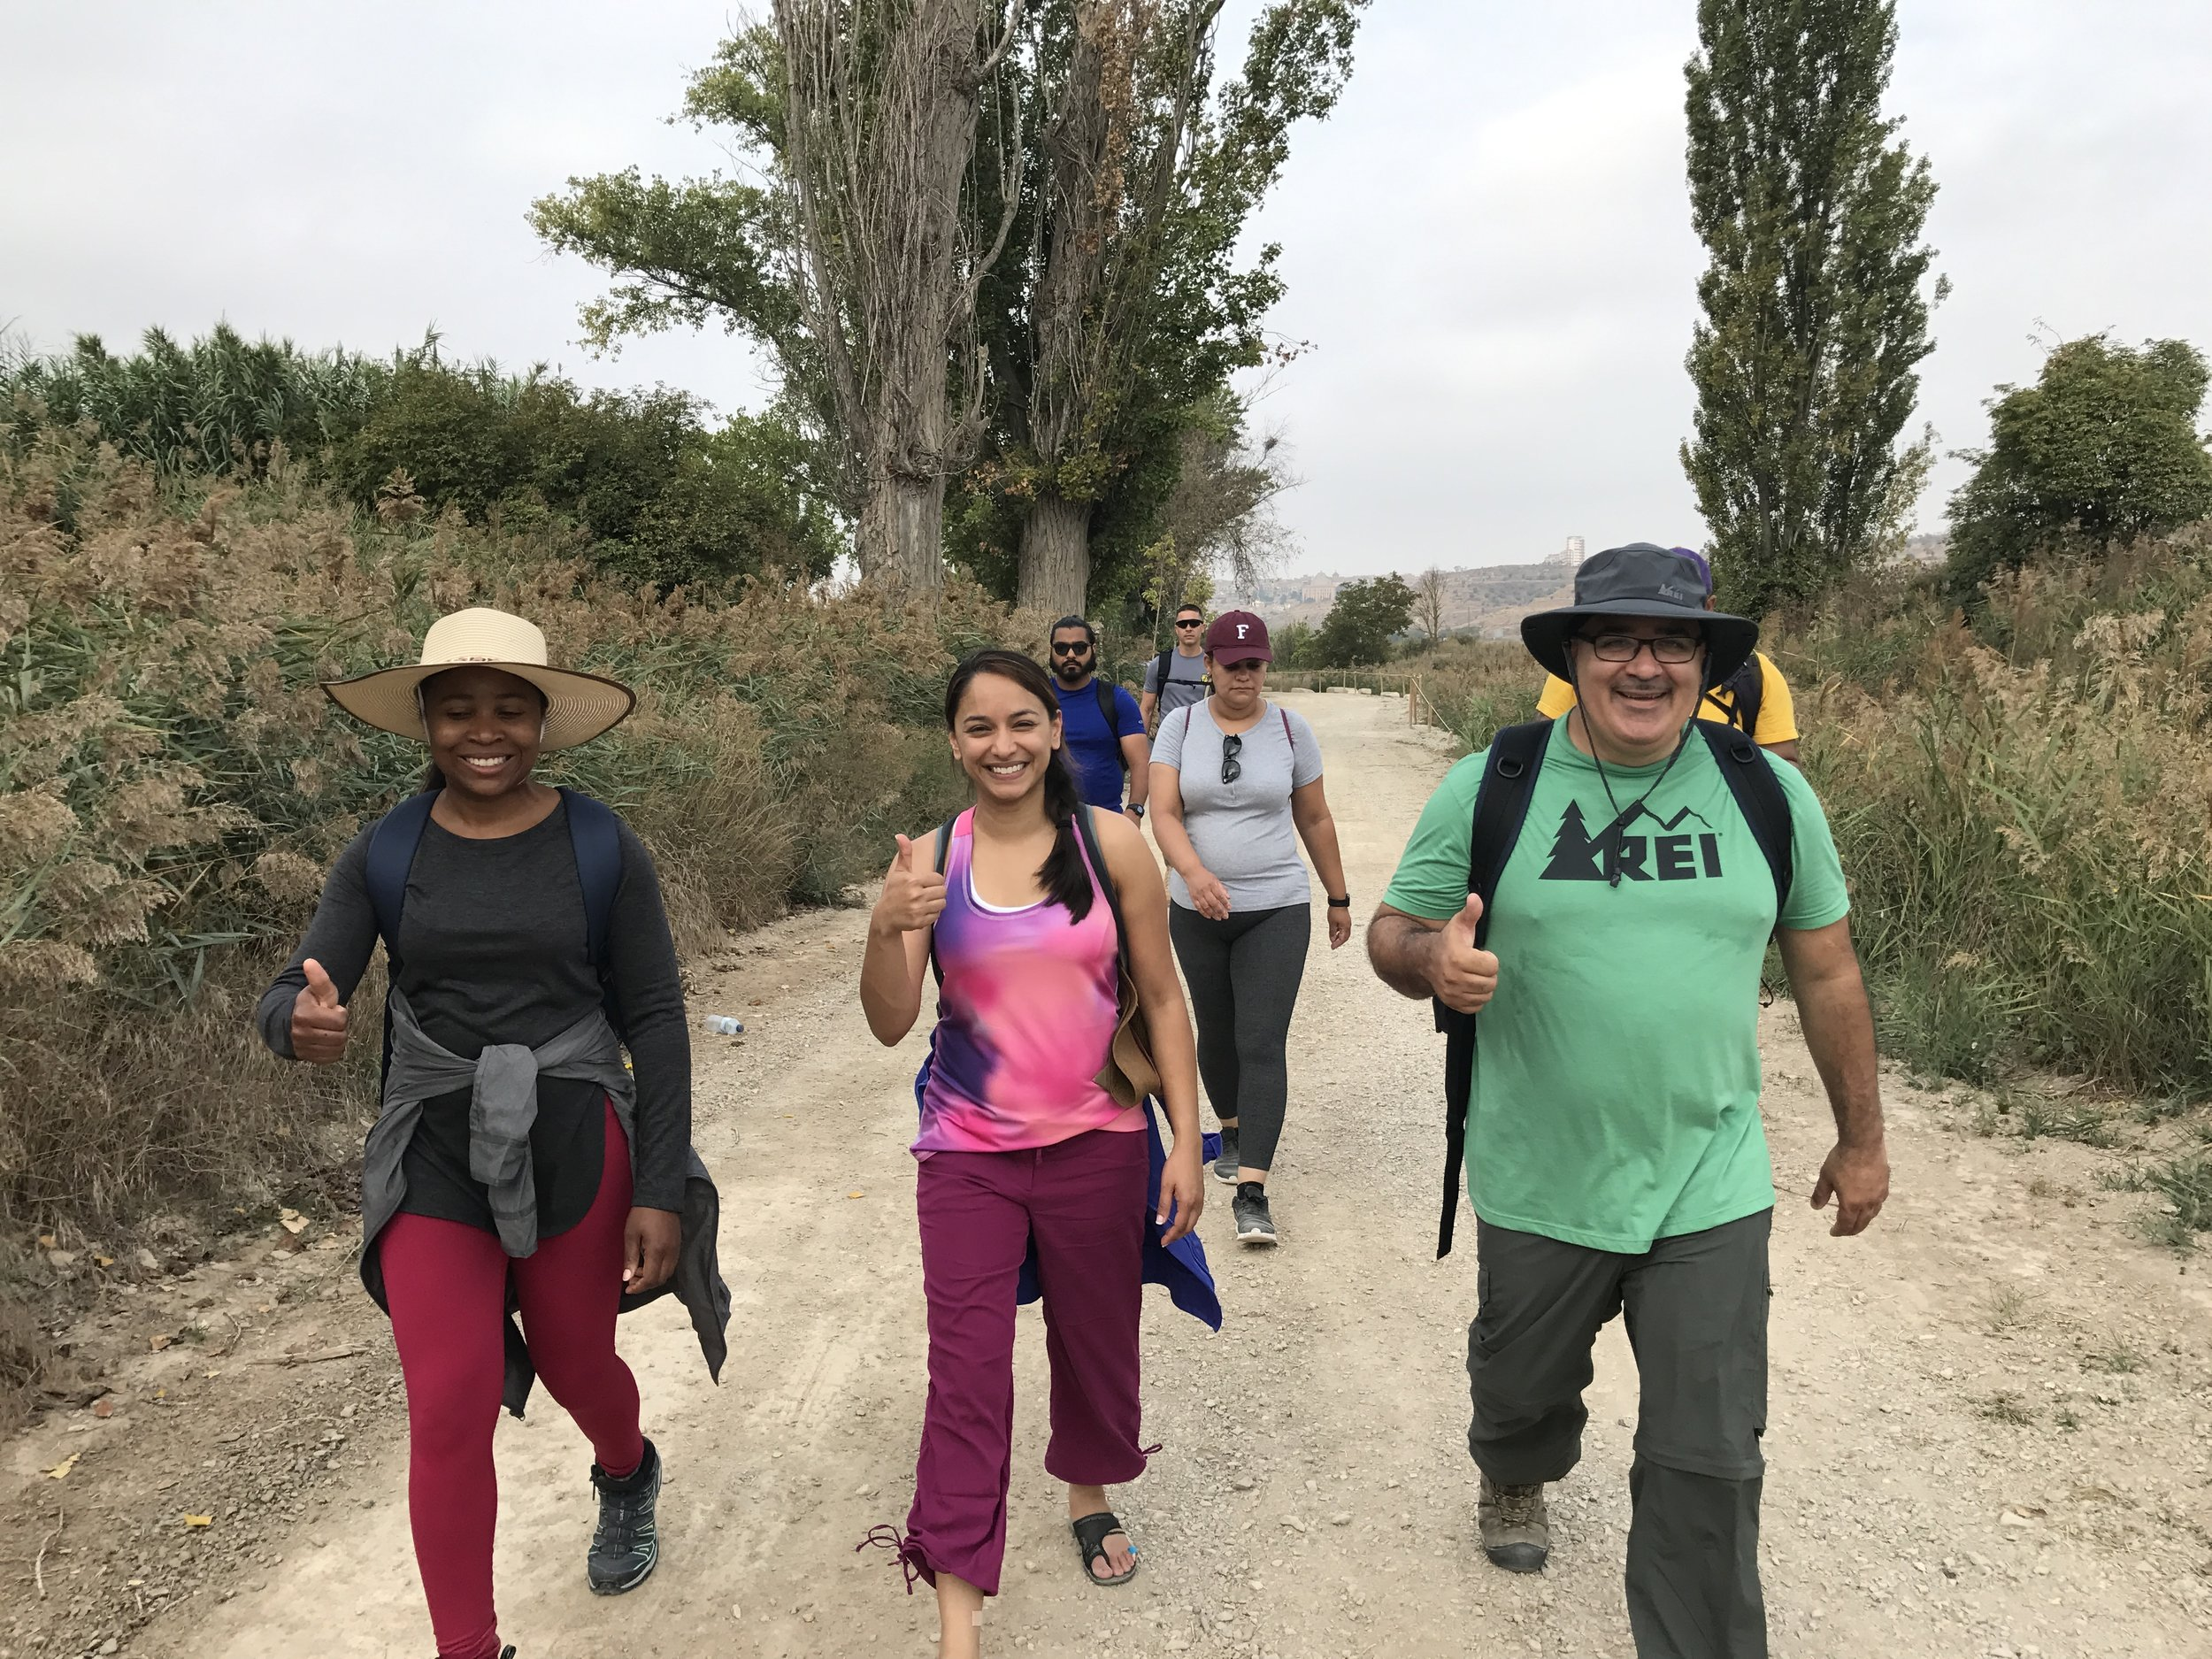 Fordham University students on a recent Ignatian Camino trek (courtesy of Chris Lowney)